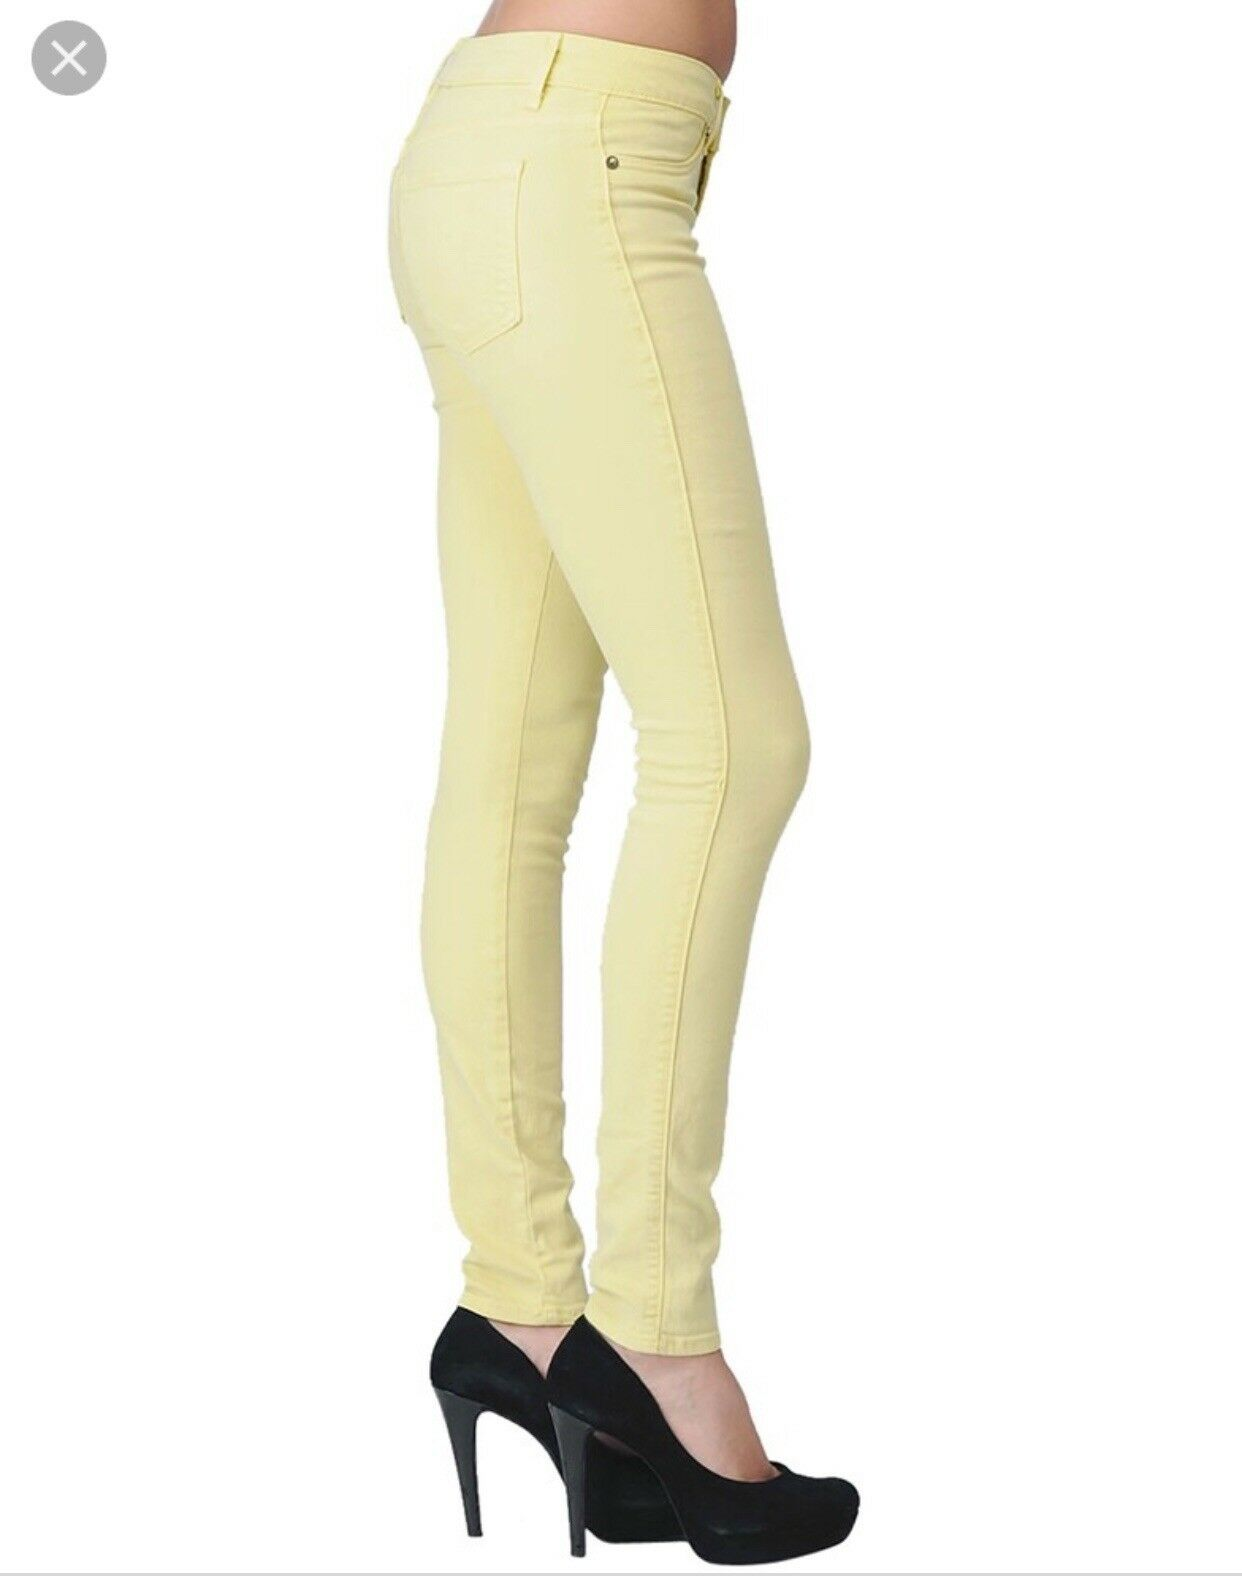 Rich and skinny Yellow Jeans Size 25